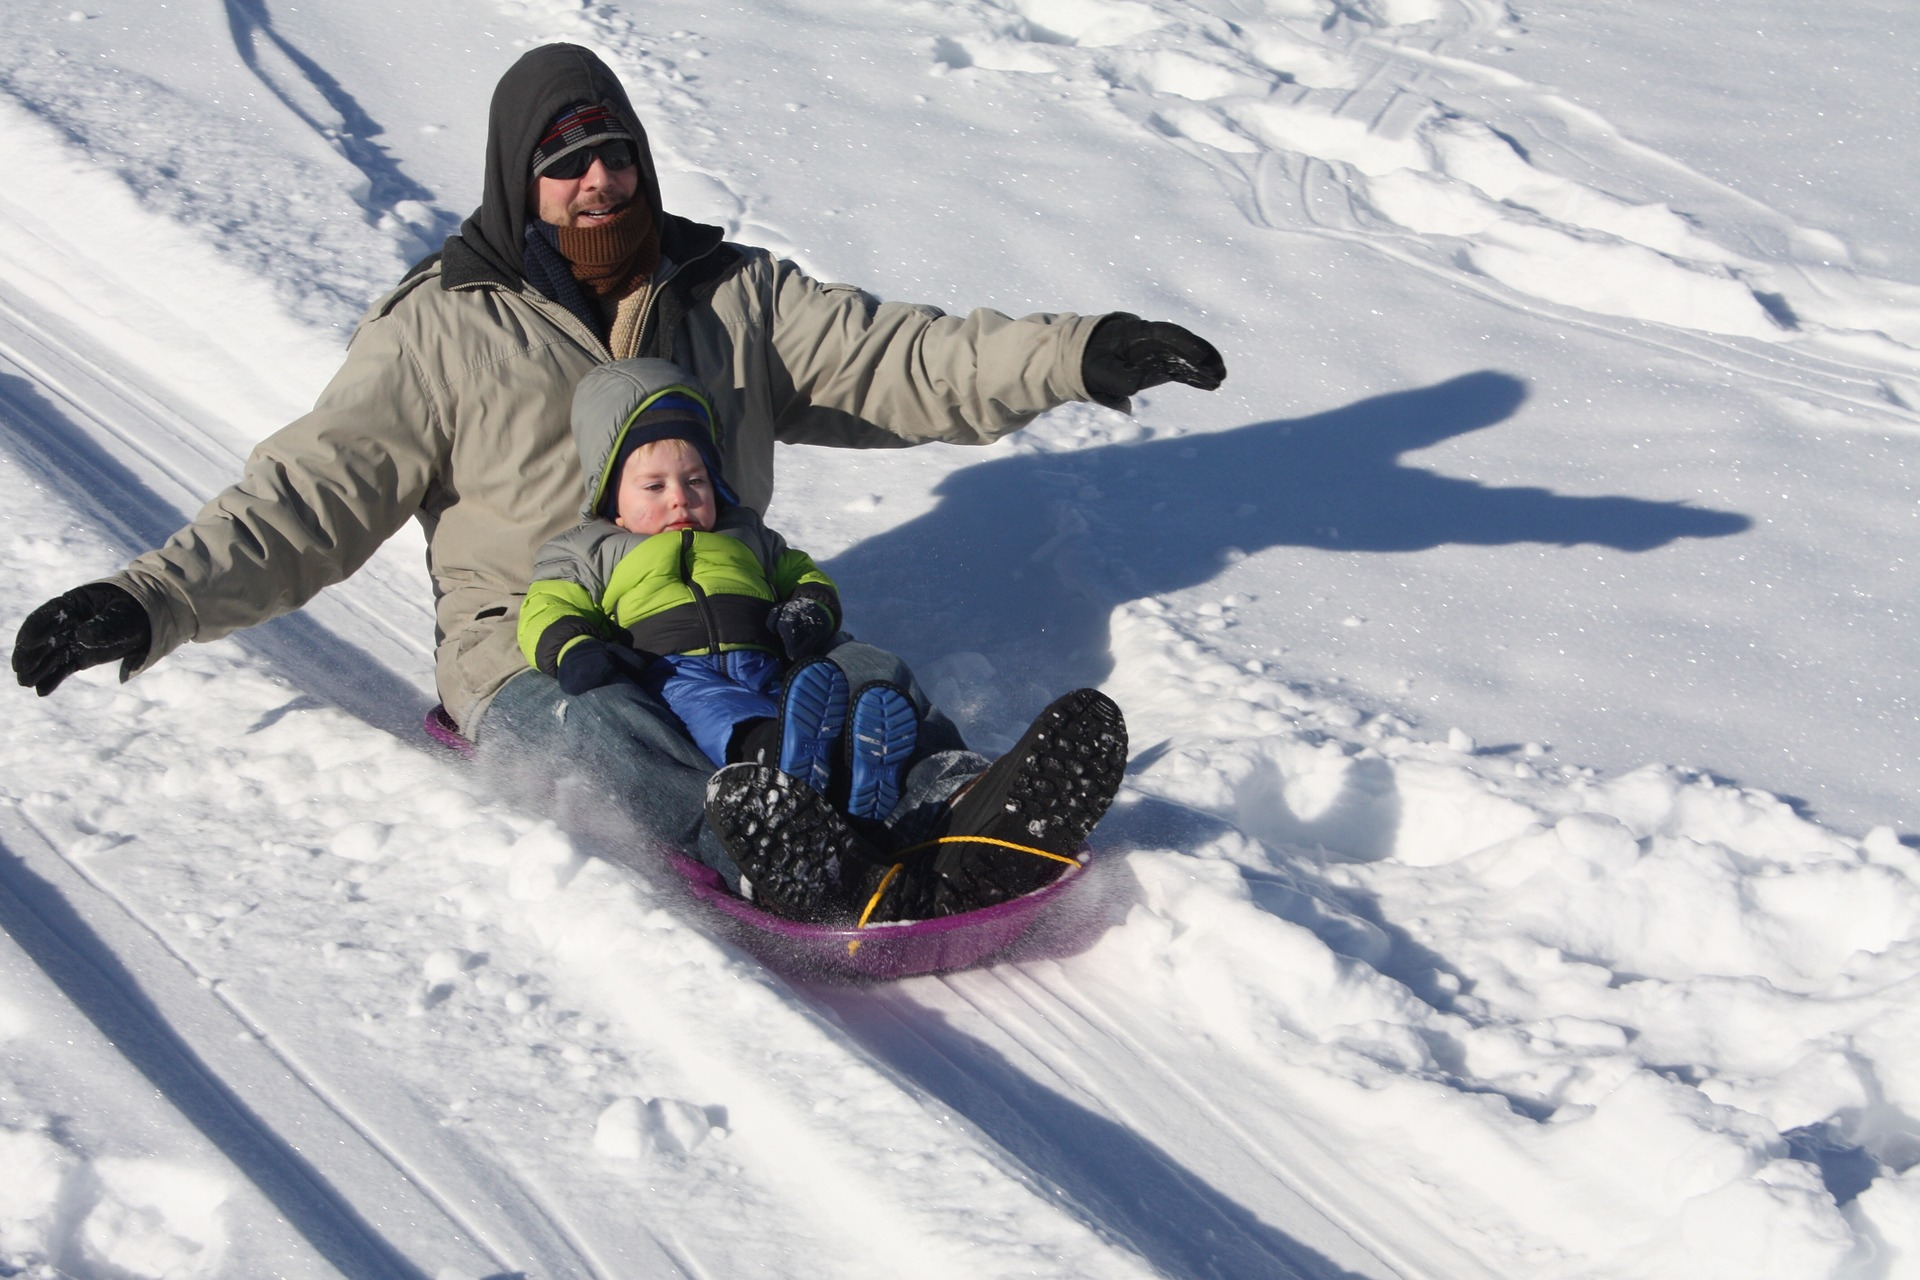 sledding - ways to beat the cold